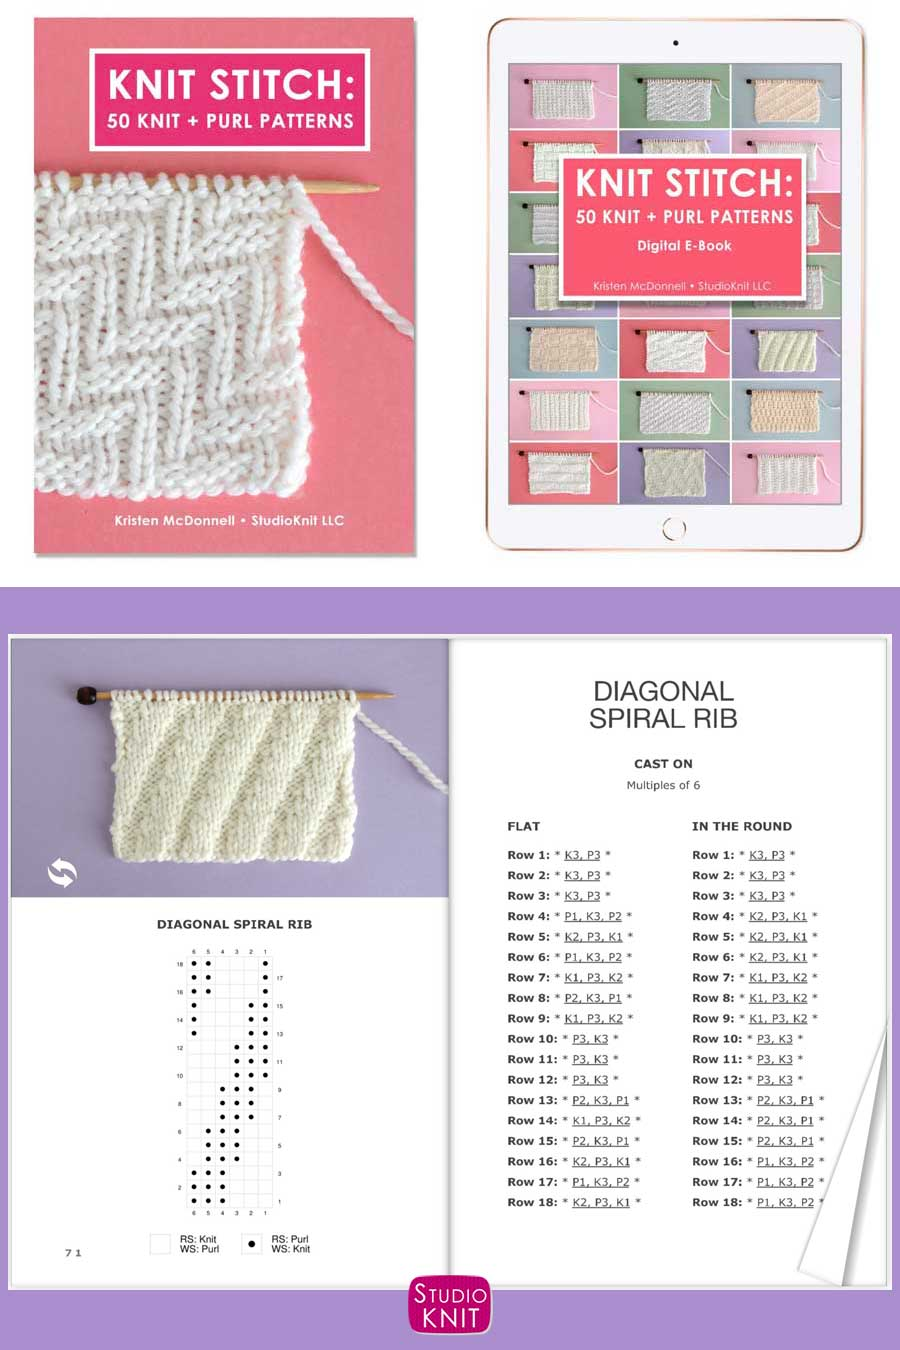 Knit Stitch Pattern Book with Diagonal Spiral Rib Stitch